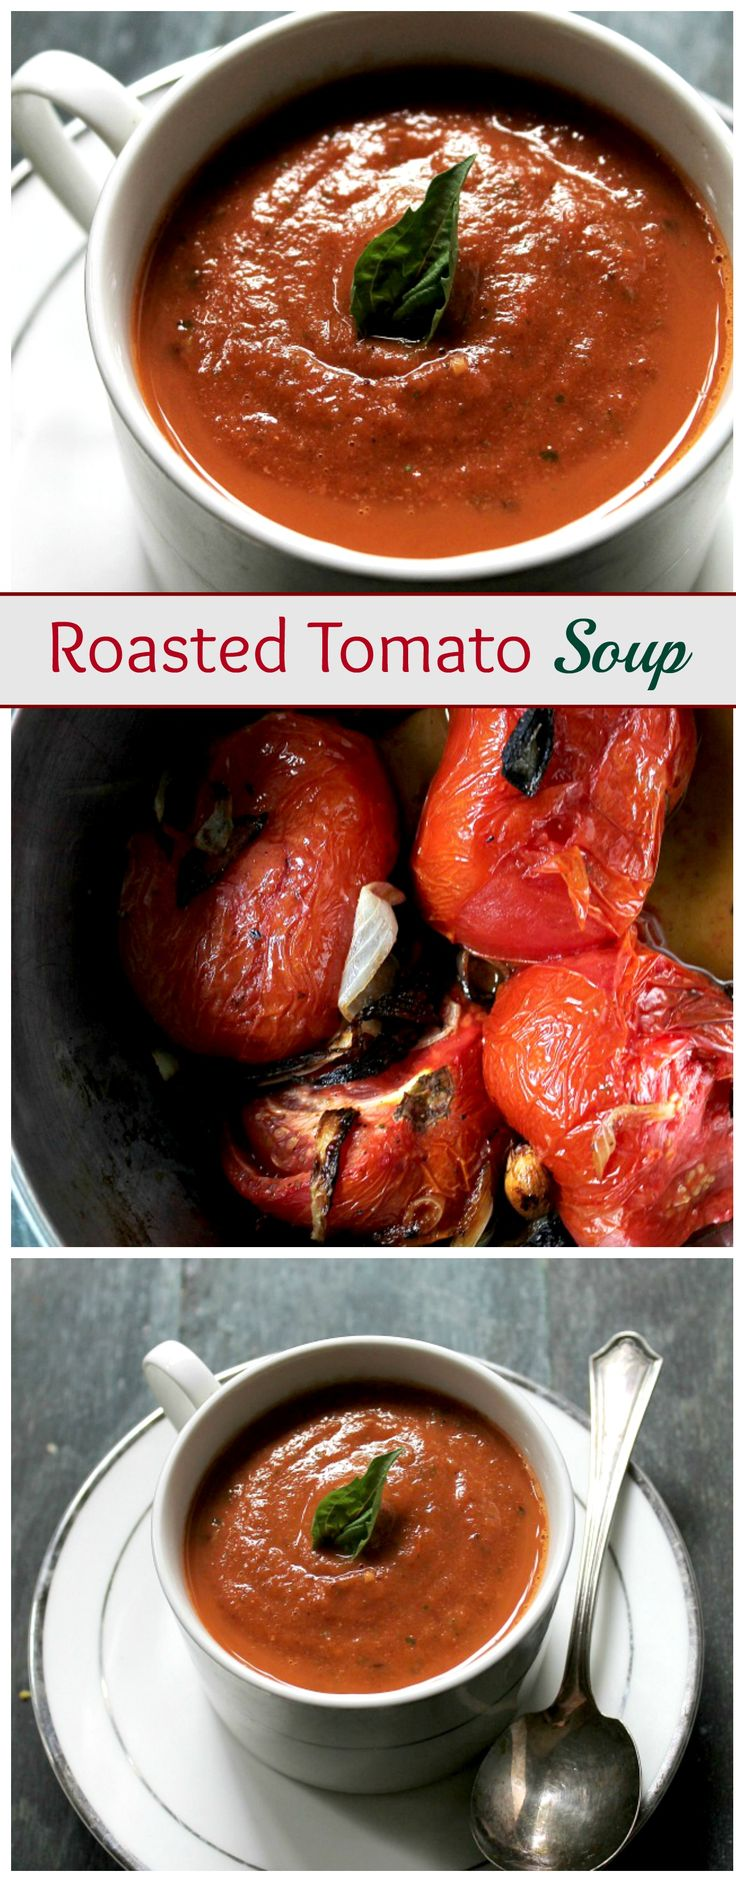 A delicious Roasted Tomato Soup made with garden fresh tomatoes, garlic, onions, and basil. This is my FAVORITE soup recipe!